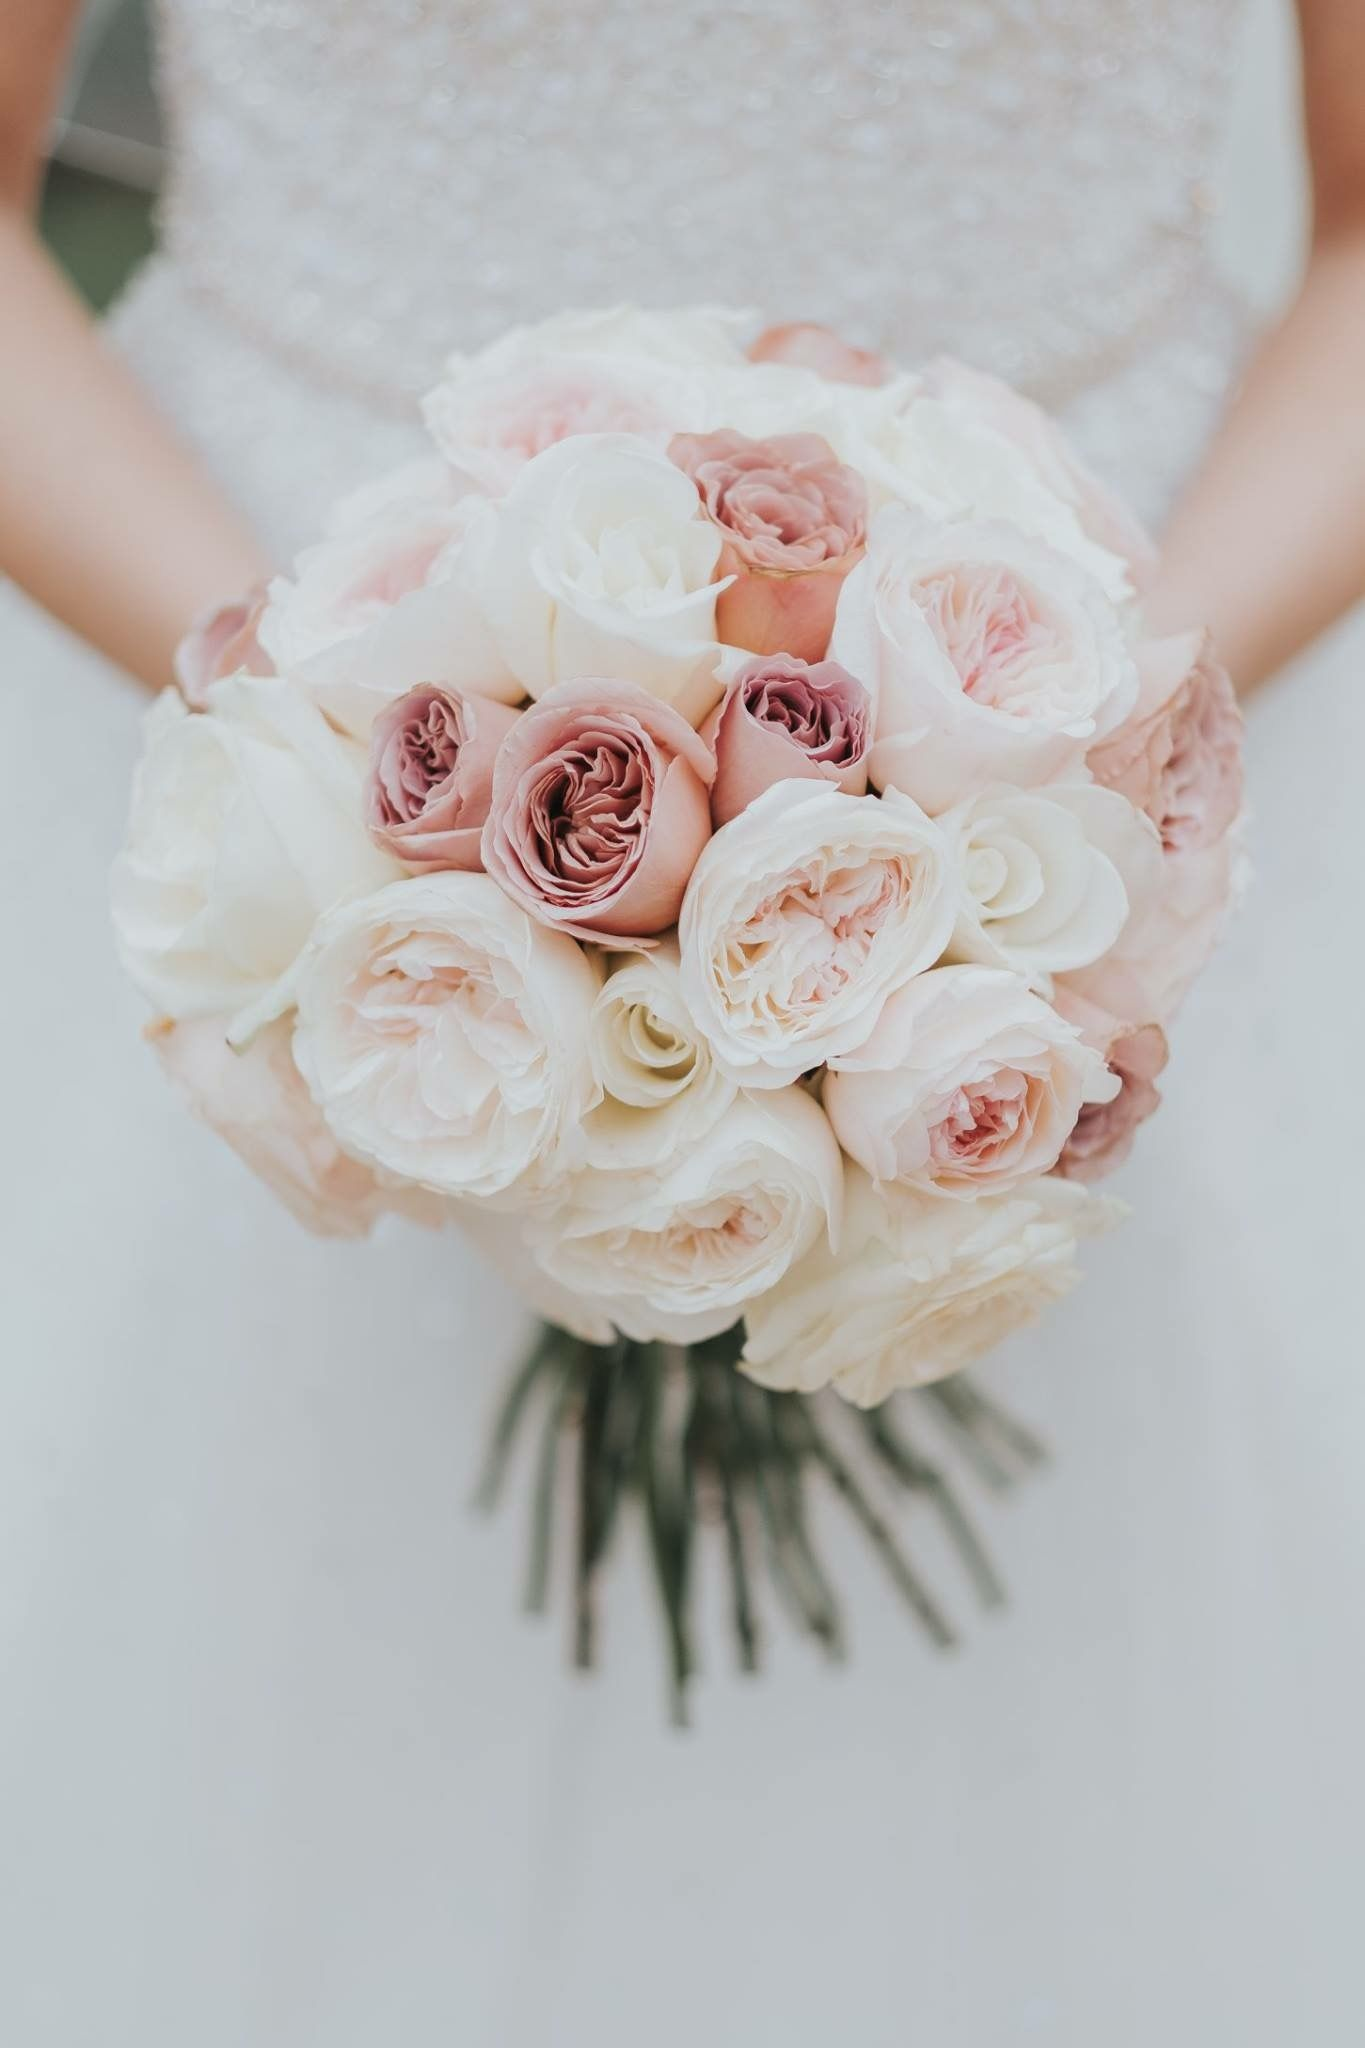 Beautiful Garden Rose Bouquet With Cafe Latte Roses Image Take By Howard S Photos Flower Boutique Wedding Flowers Floral Wedding